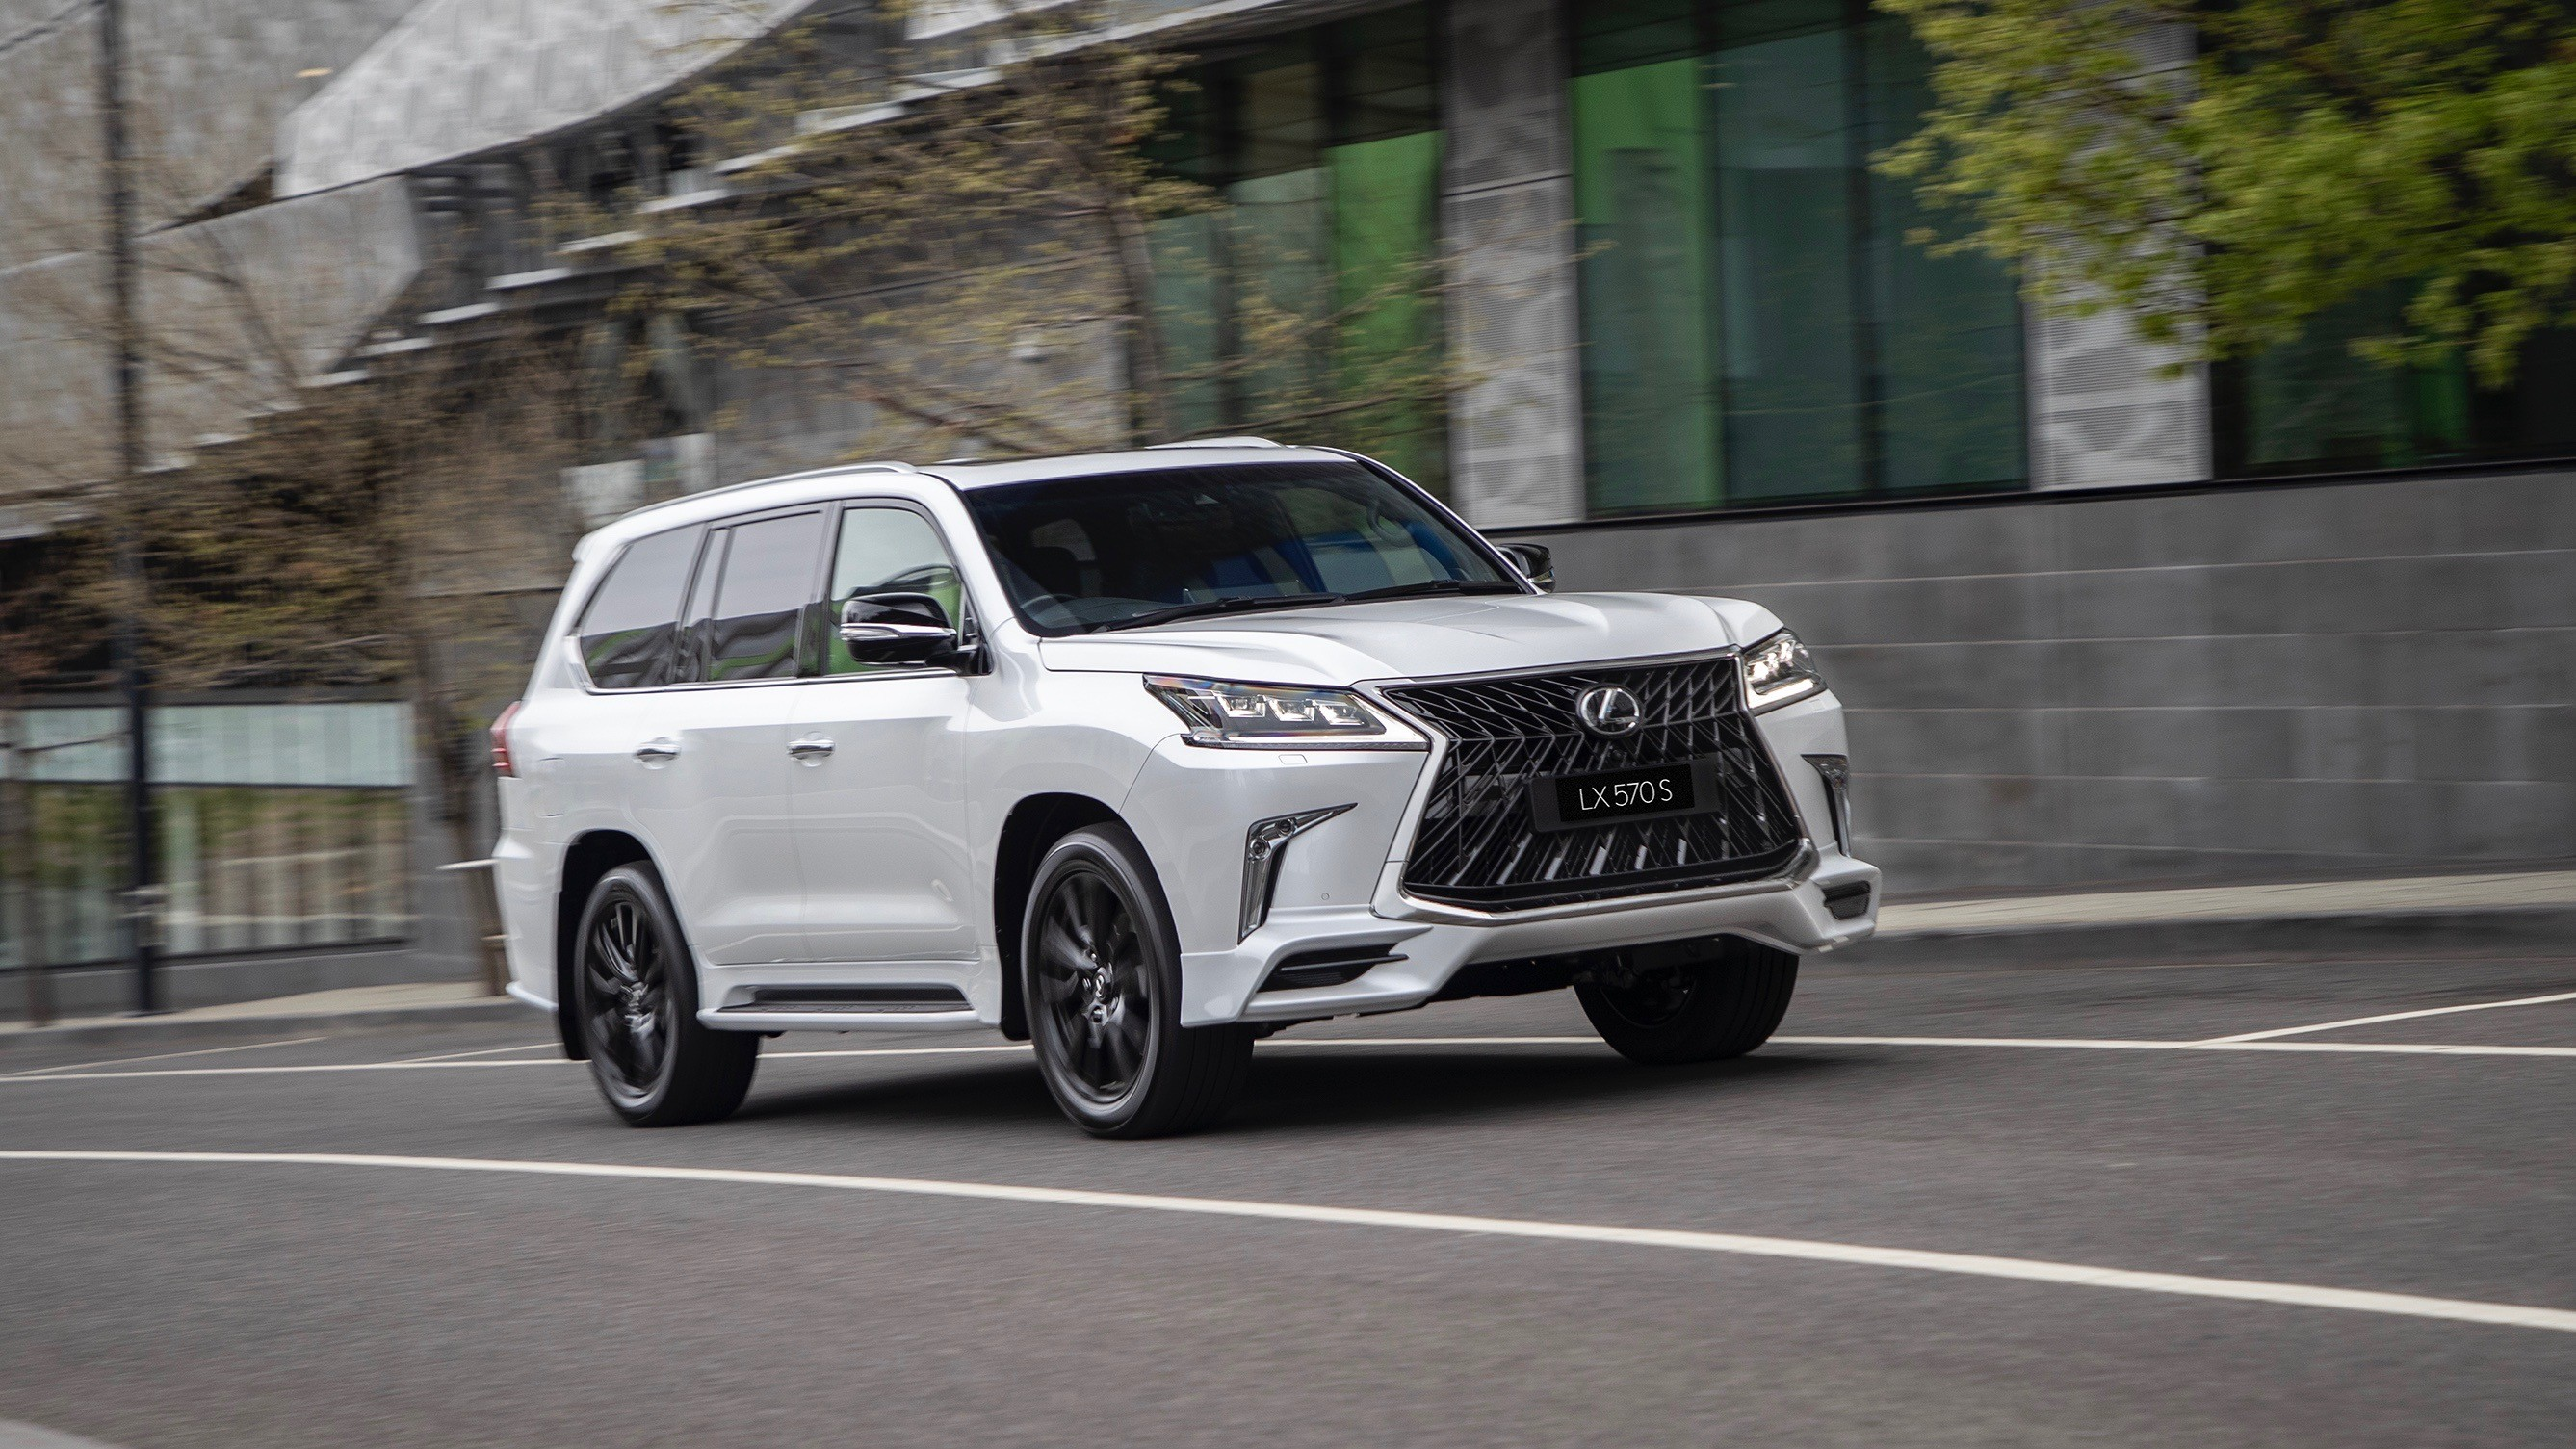 2019 Lexus Lx 570 S Debuts In Australia With Angry Body Kit